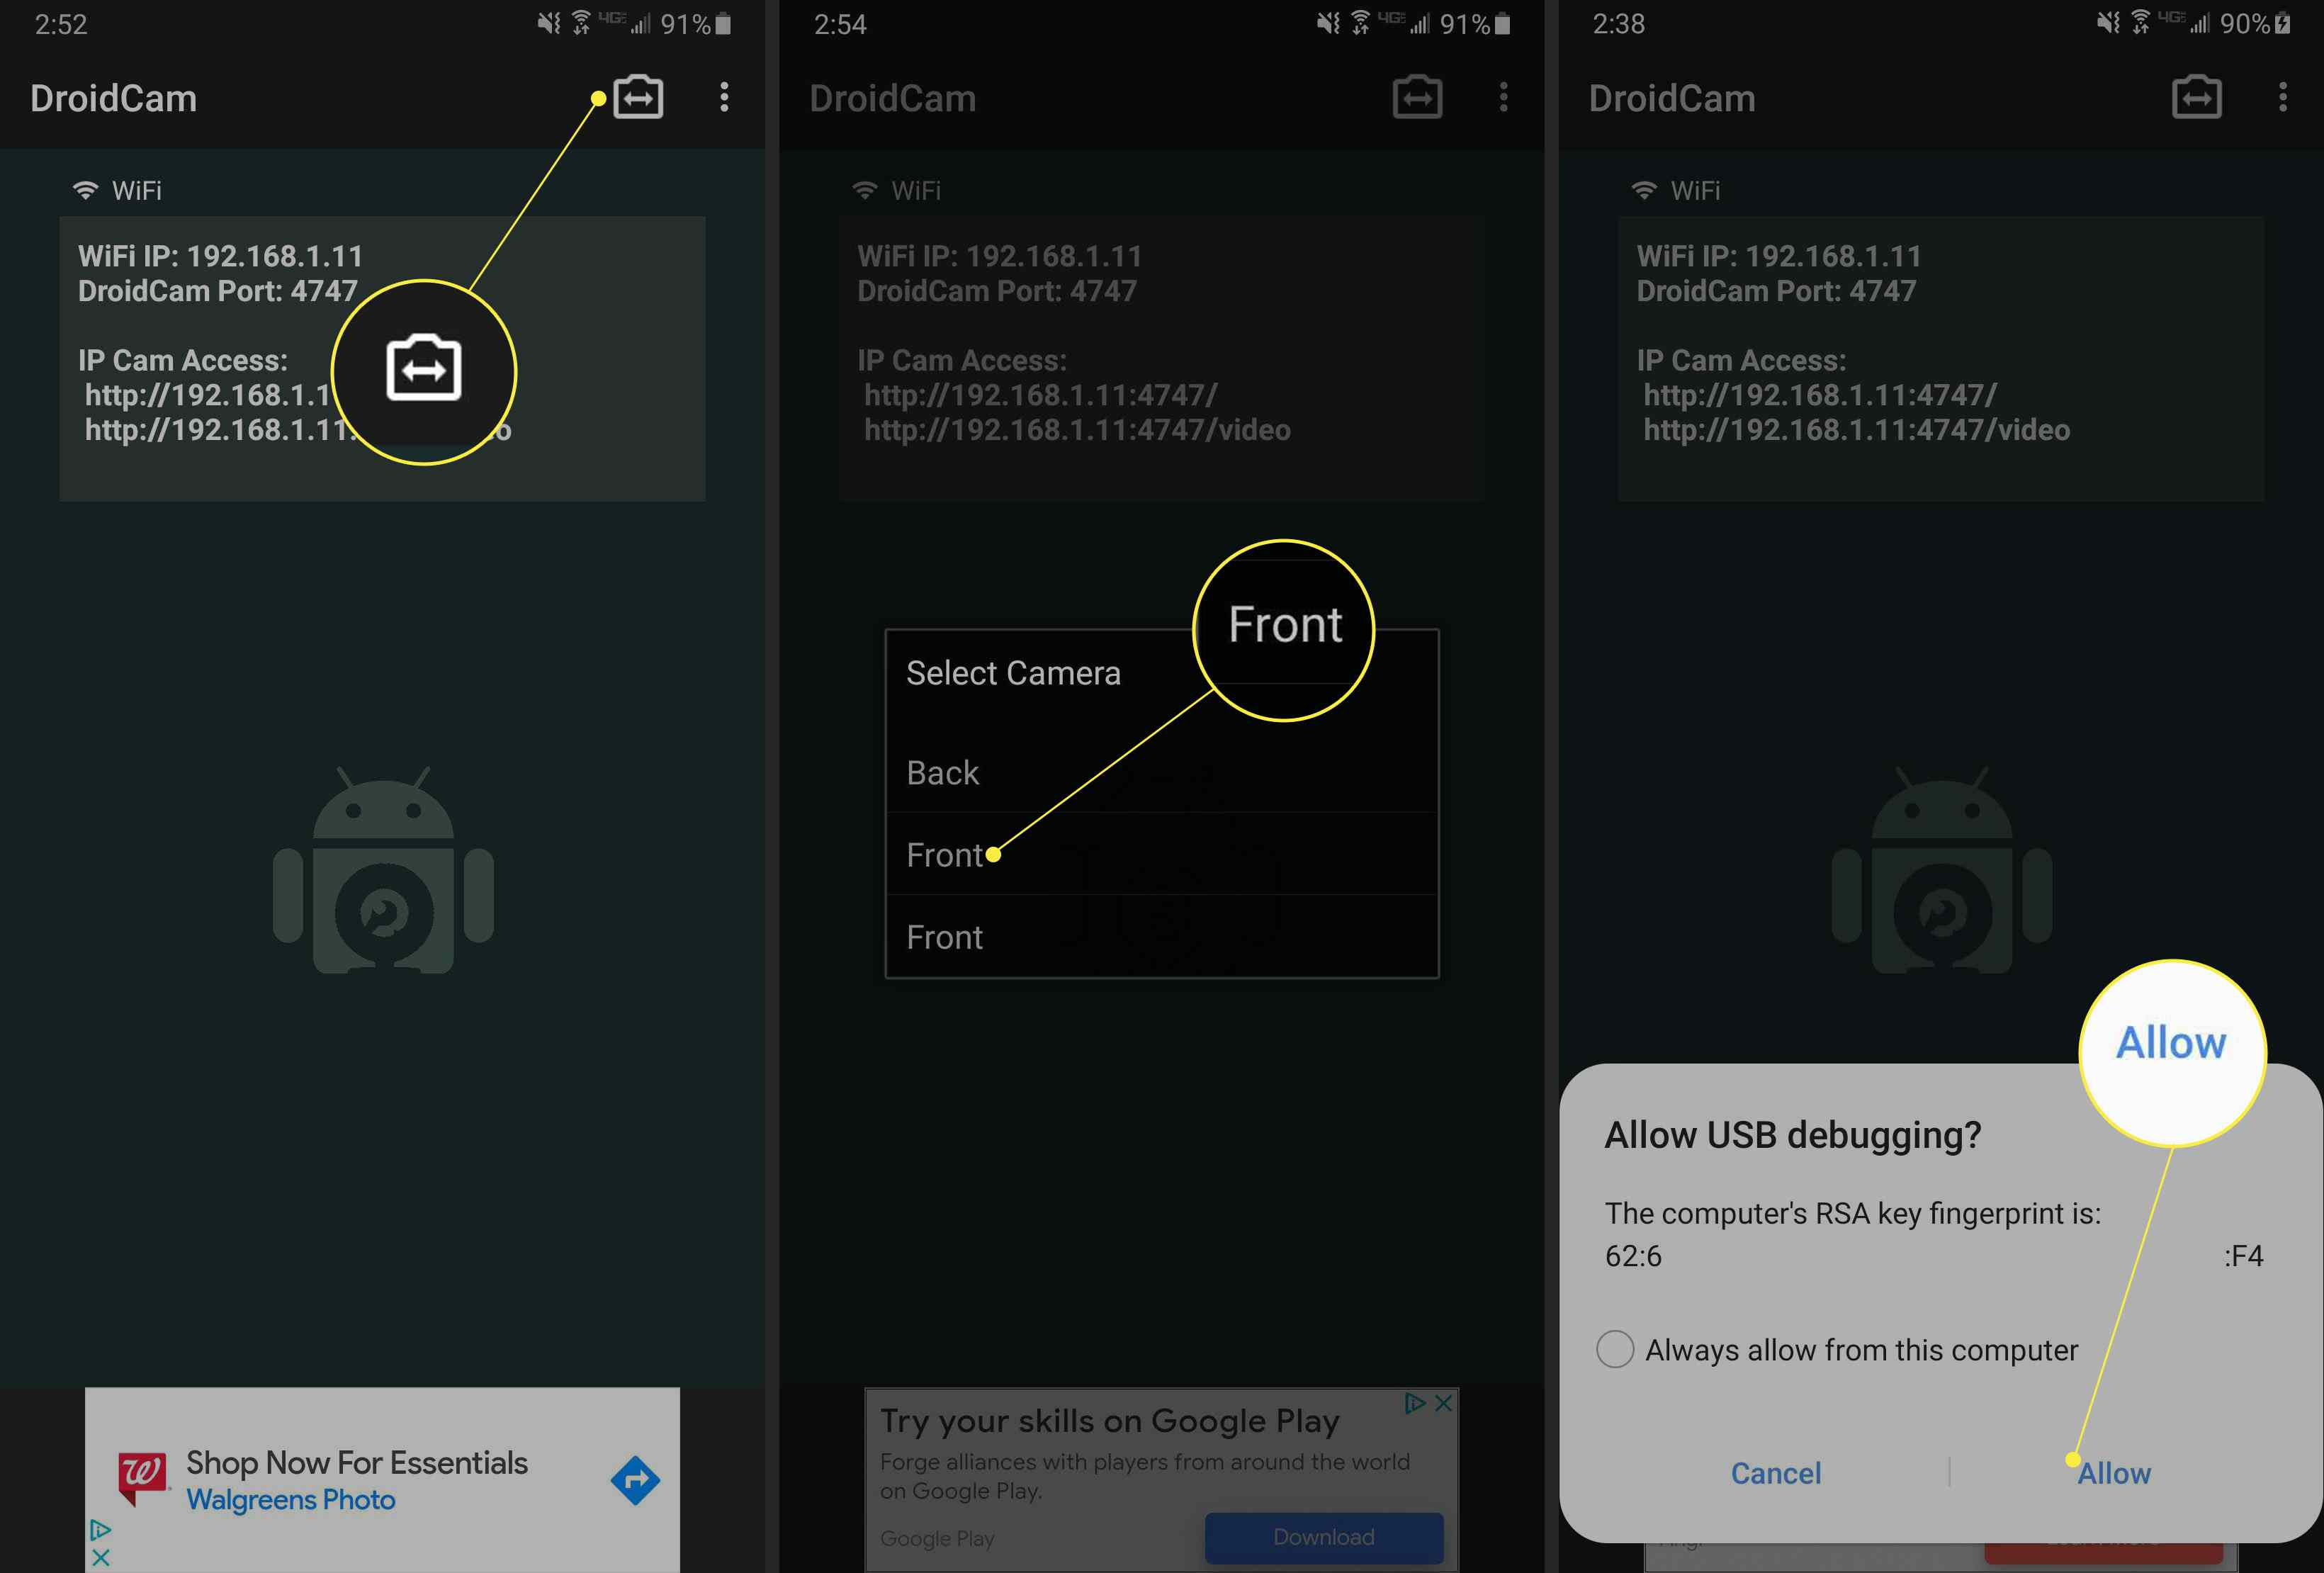 DroidCam mobile app allow USB debugging with camera icon, Front, and Allow highlighted